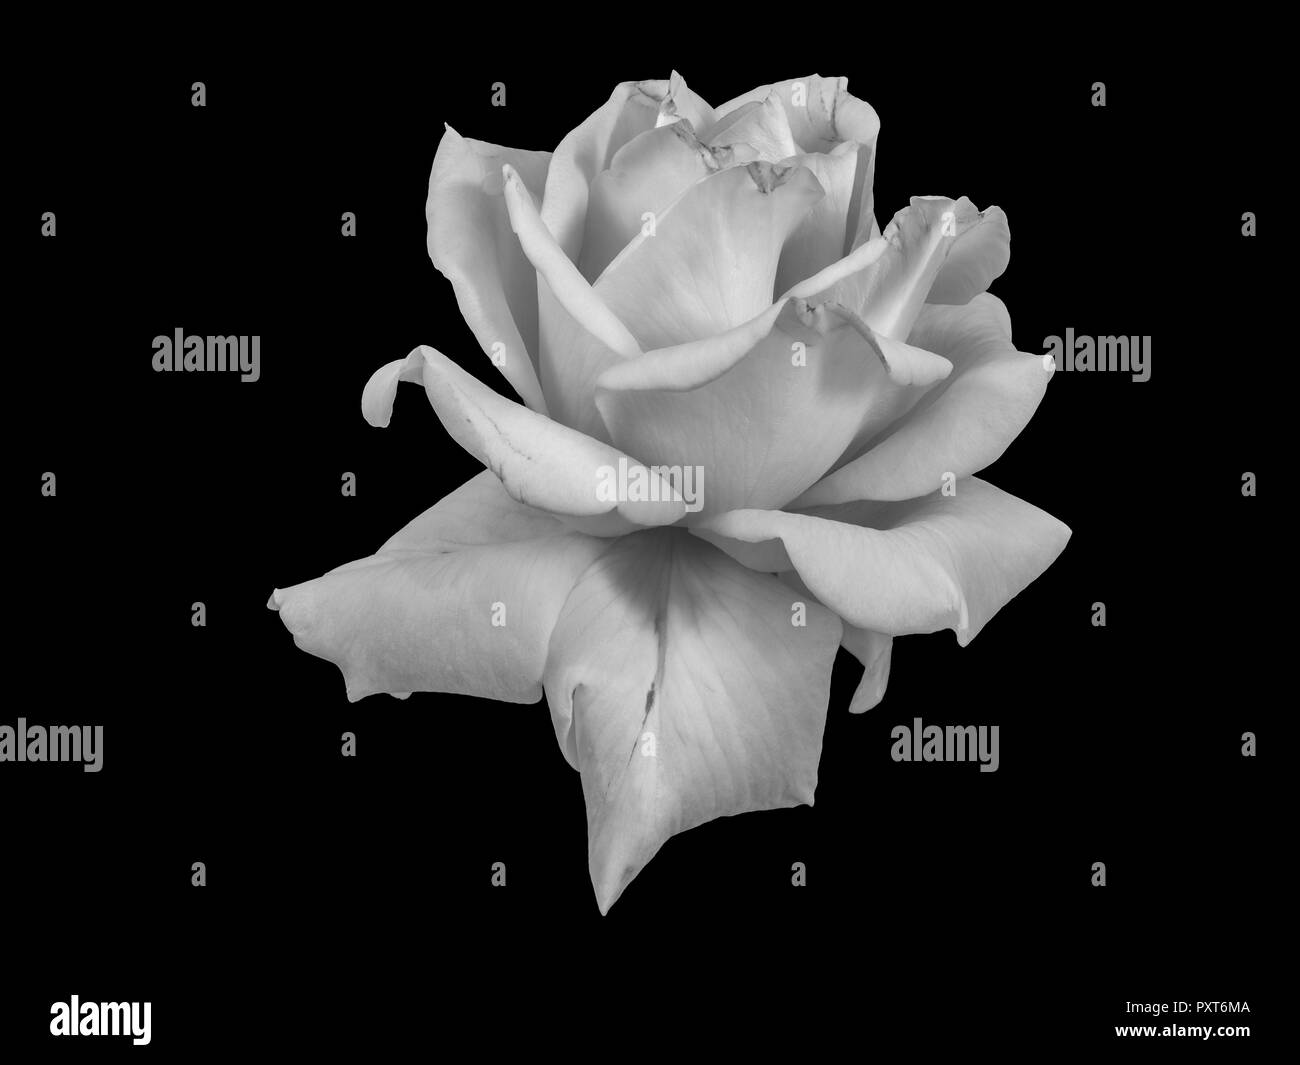 Flower Still Life Painting Black And White Stock Photos Images Alamy